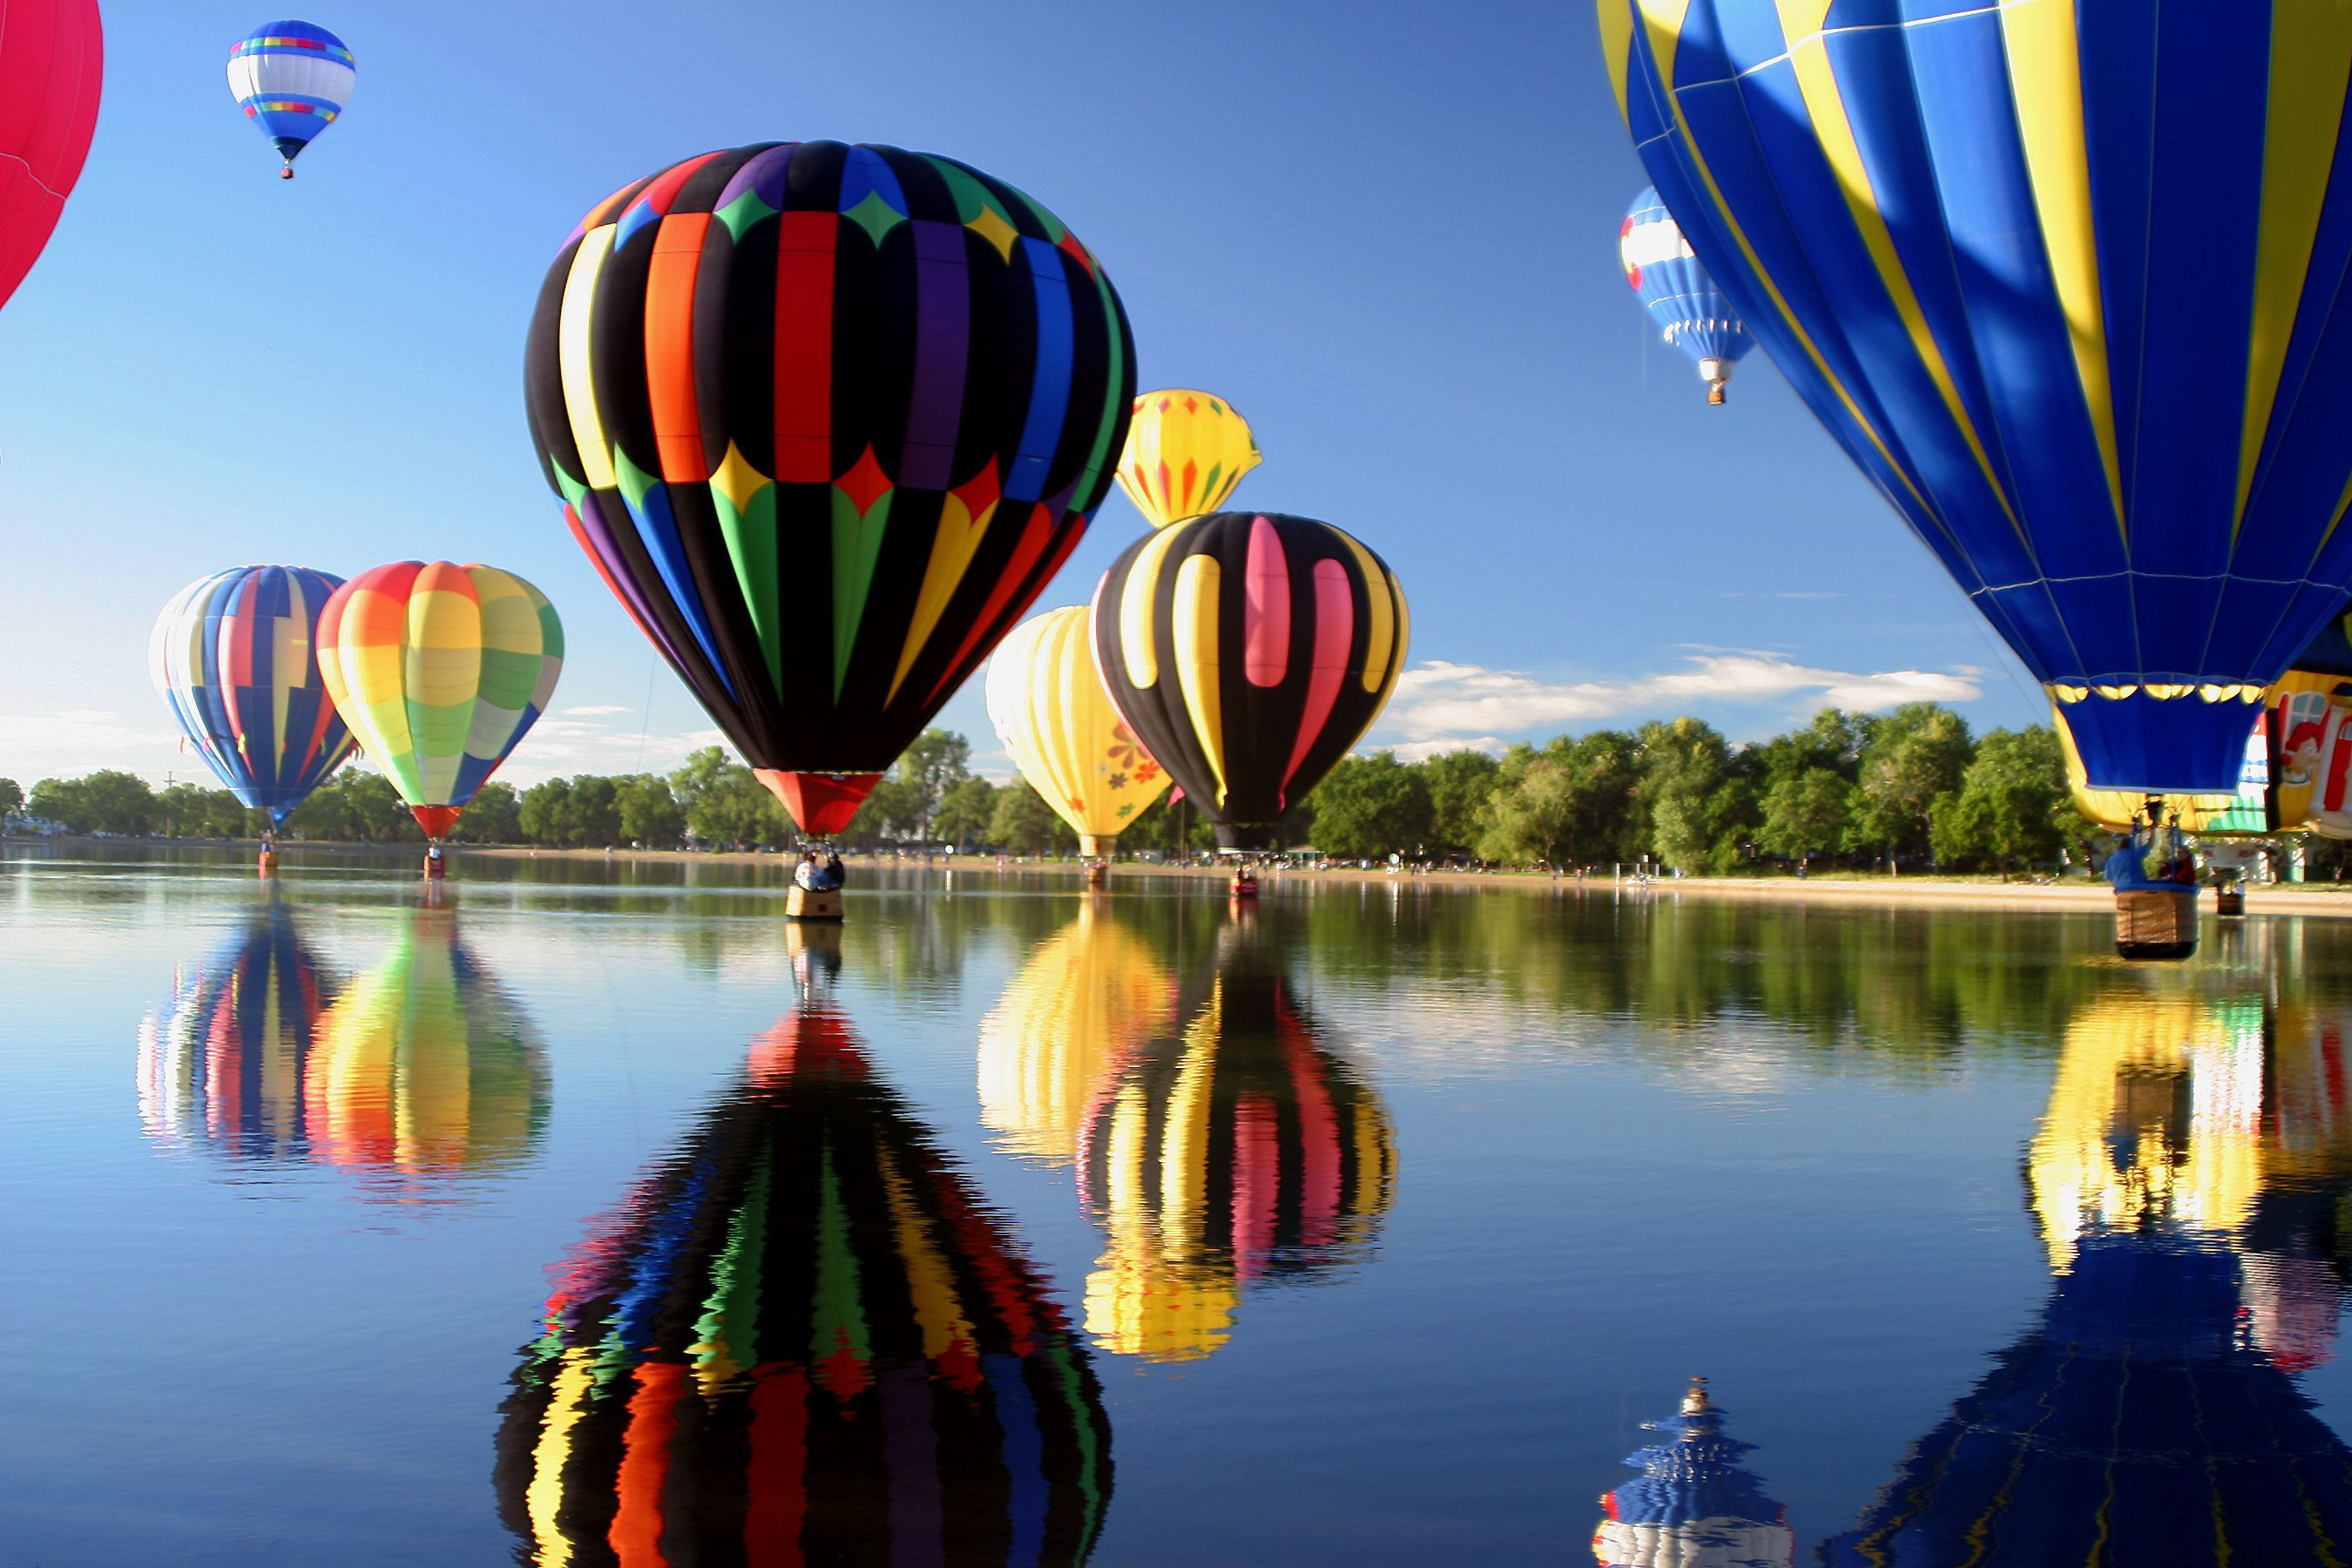 50 Ipad Air Wallpapers In High Definition For Free Download: Awesome Hot Air Balloon High Definition Wallpapers